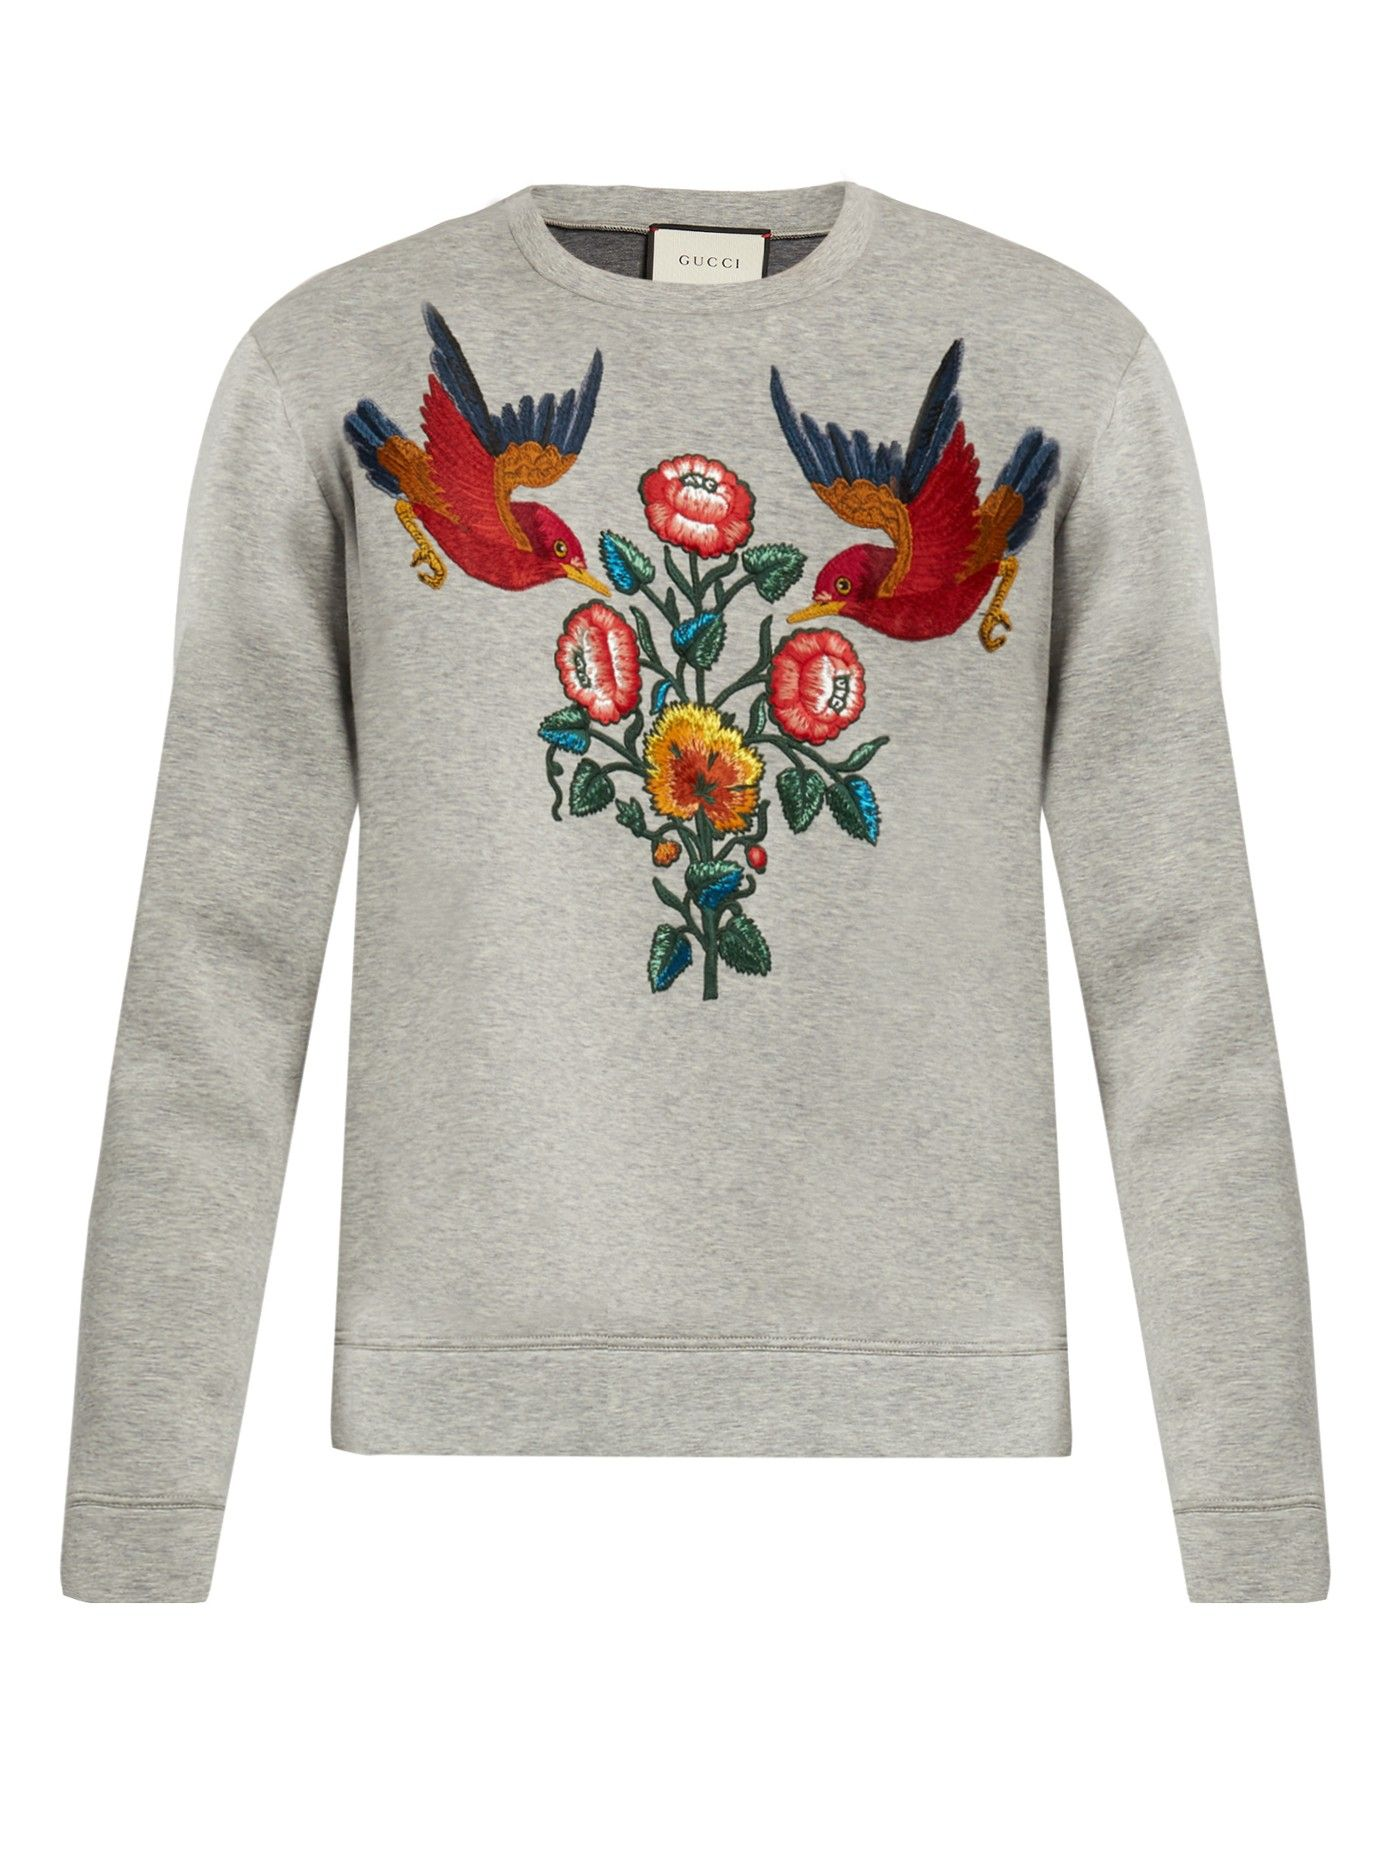 27829ad8c Bird and flower-appliqué cotton sweatshirt | Gucci | MATCHESFASHION.COM